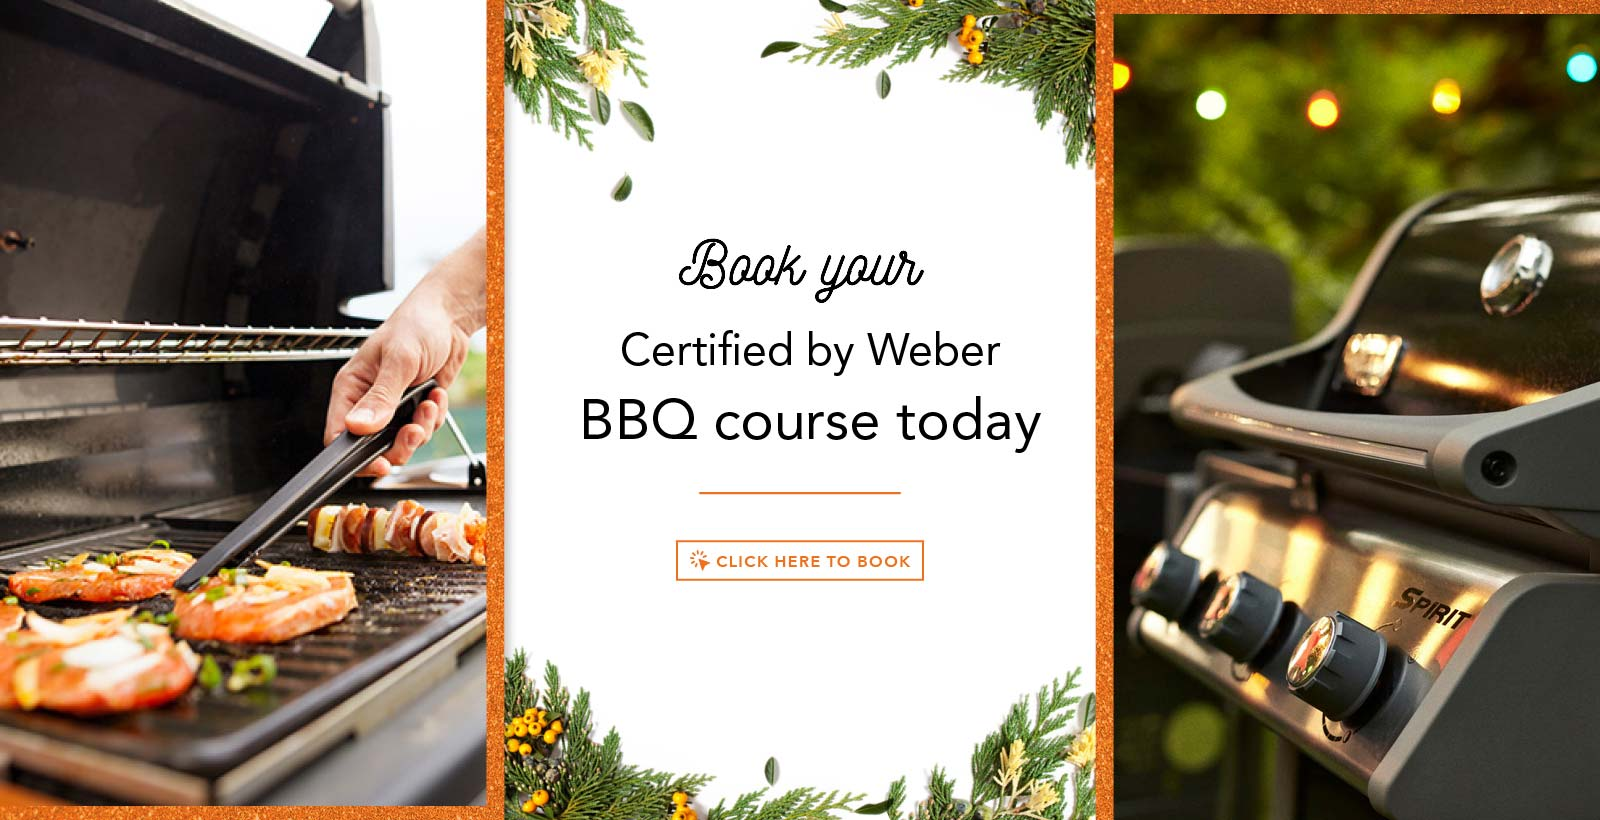 Book your certified by Weber BBQ Course today